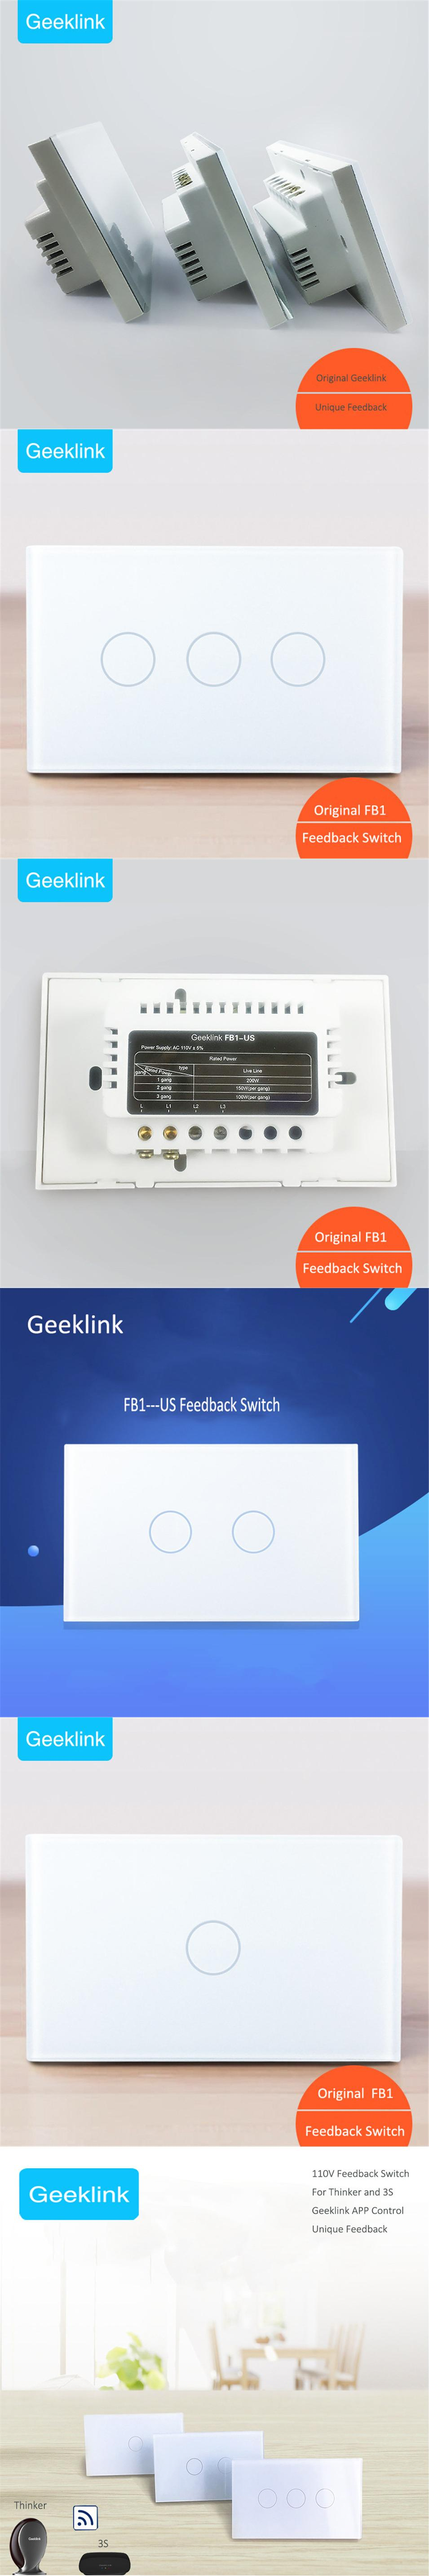 New Original Smart Home Geeklink US Type Touch panel Feedback Switch ...